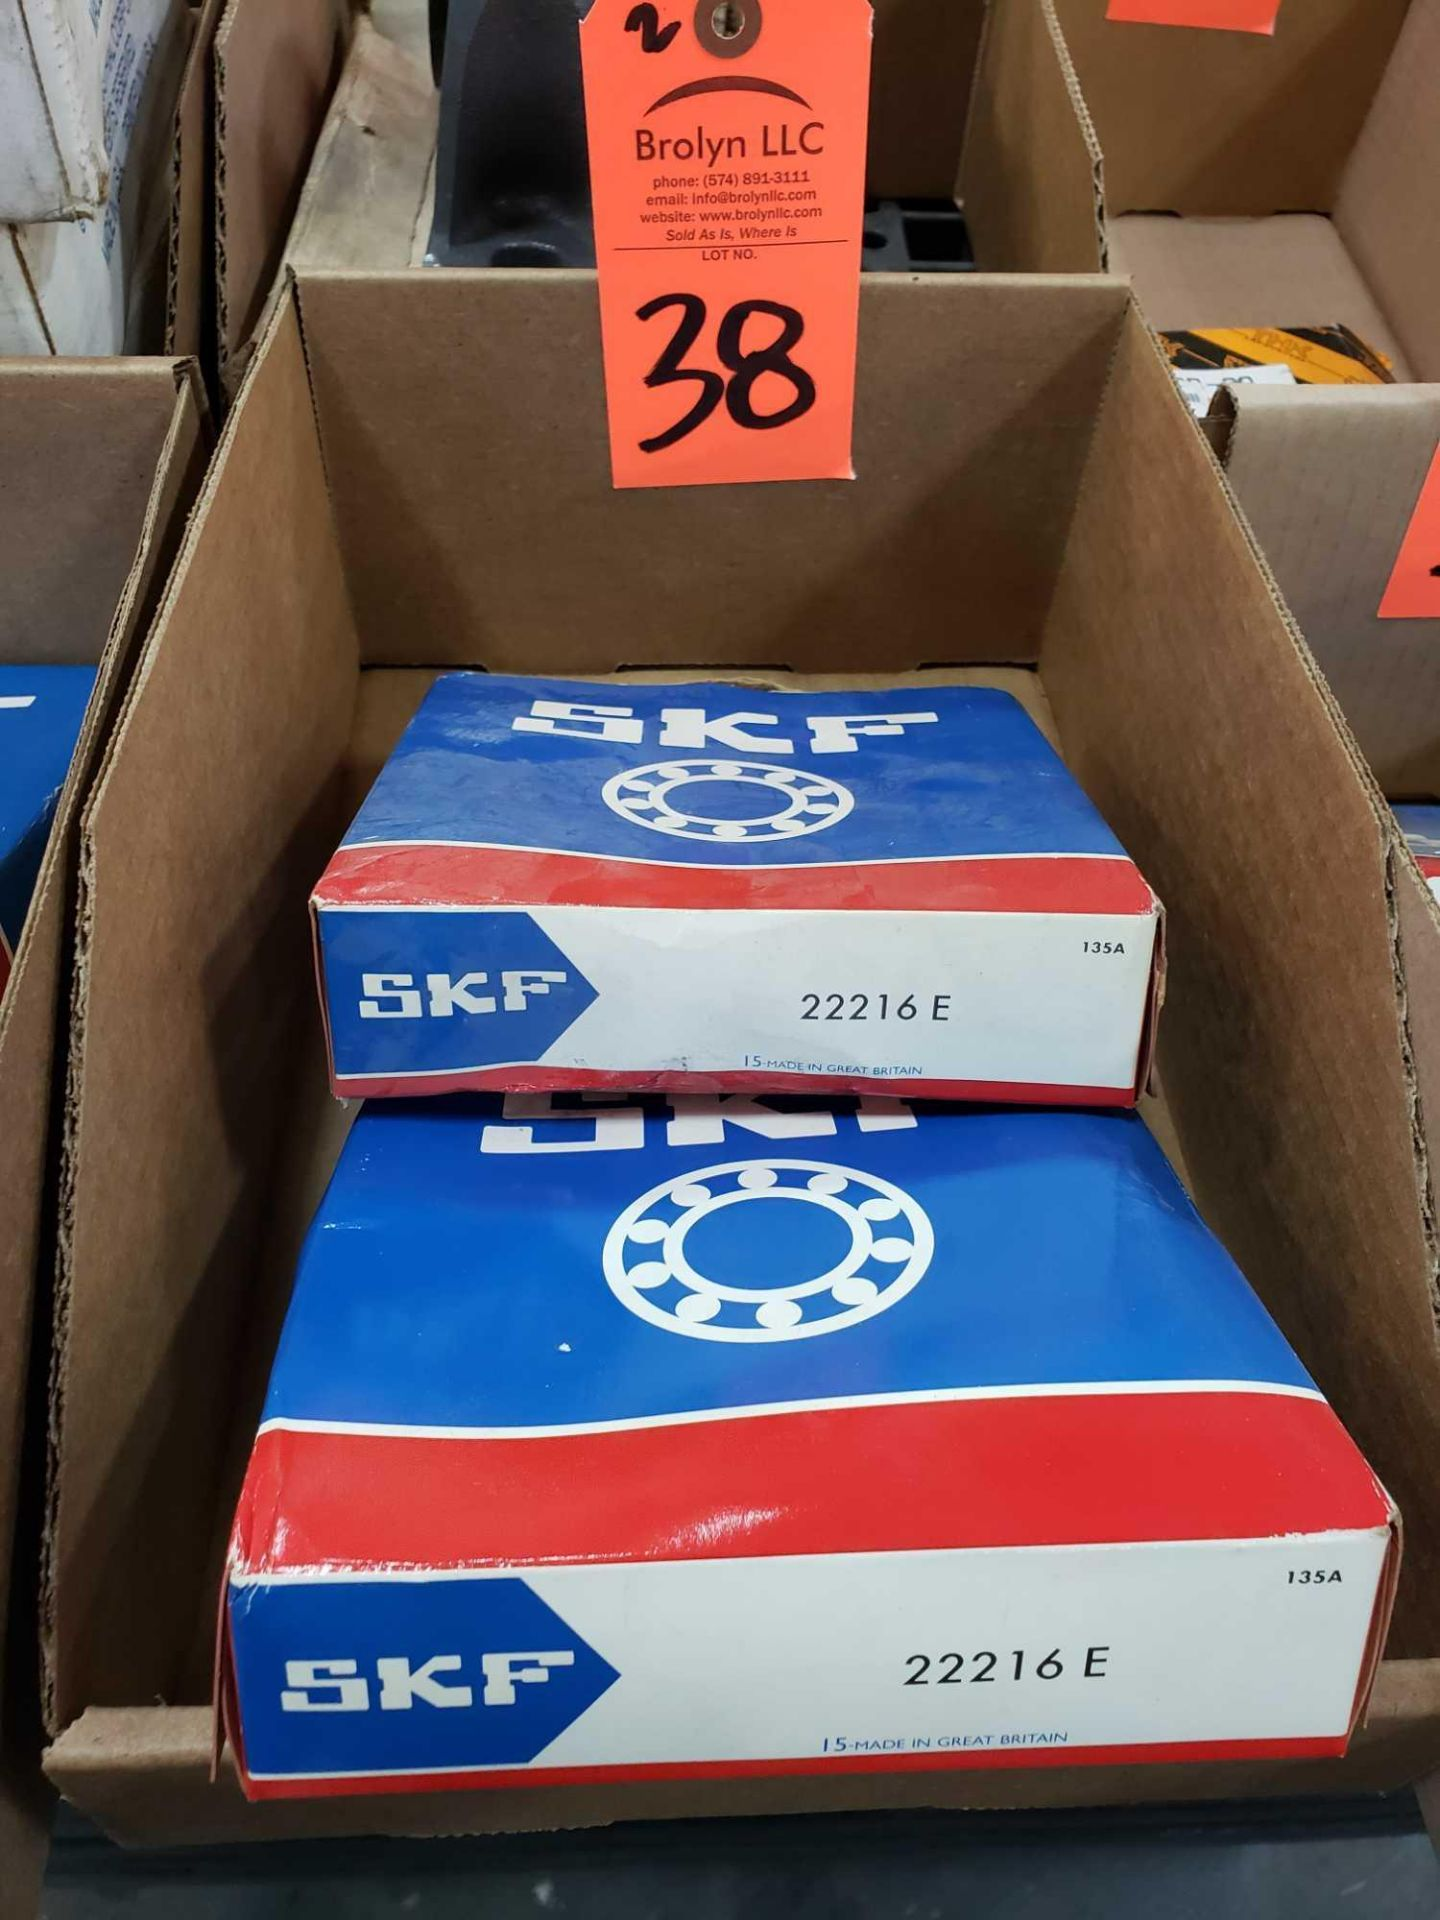 Lot 38 - Qty 2 - SKF bearings model 22216E. New in boxes.